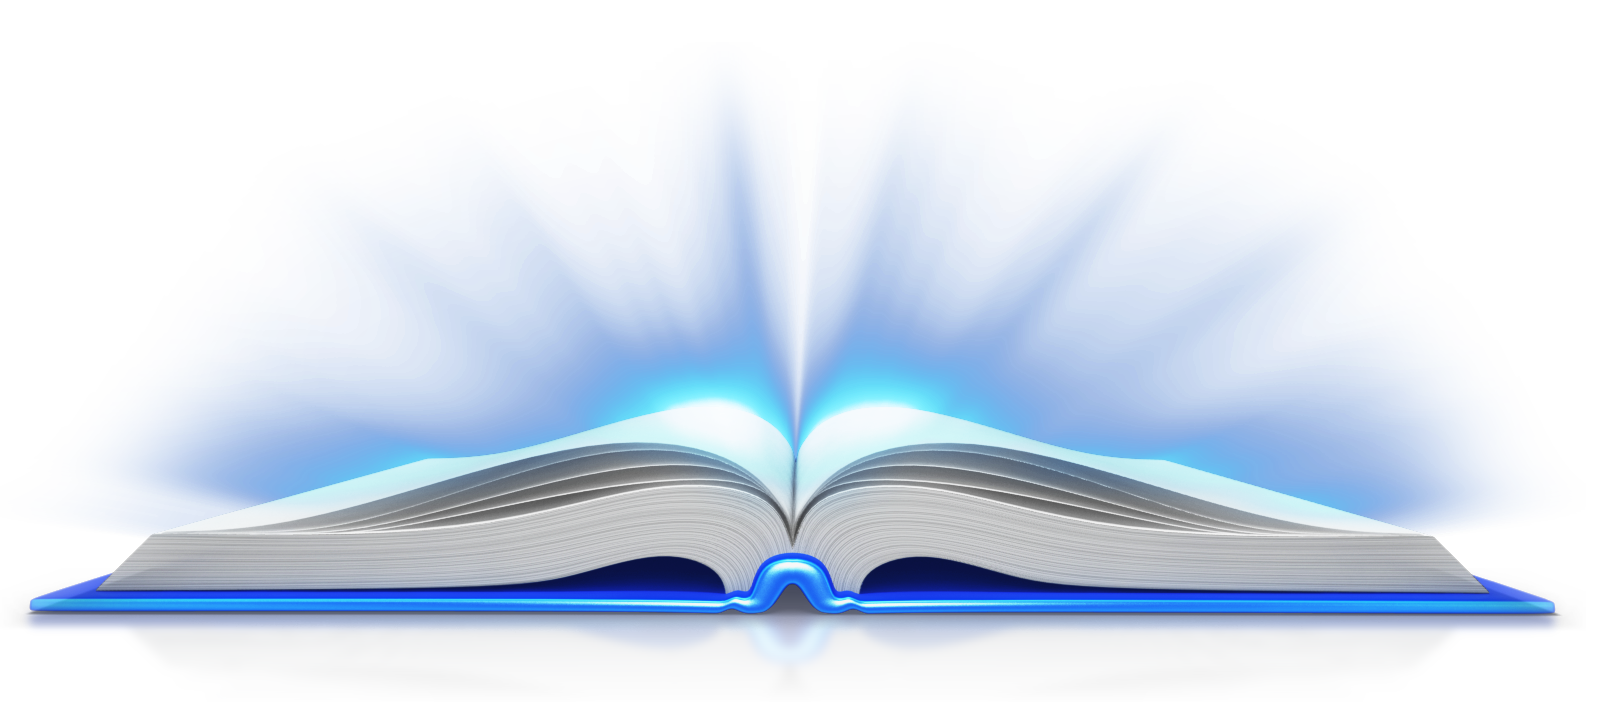 Book images transparent free. Png files for photoshop